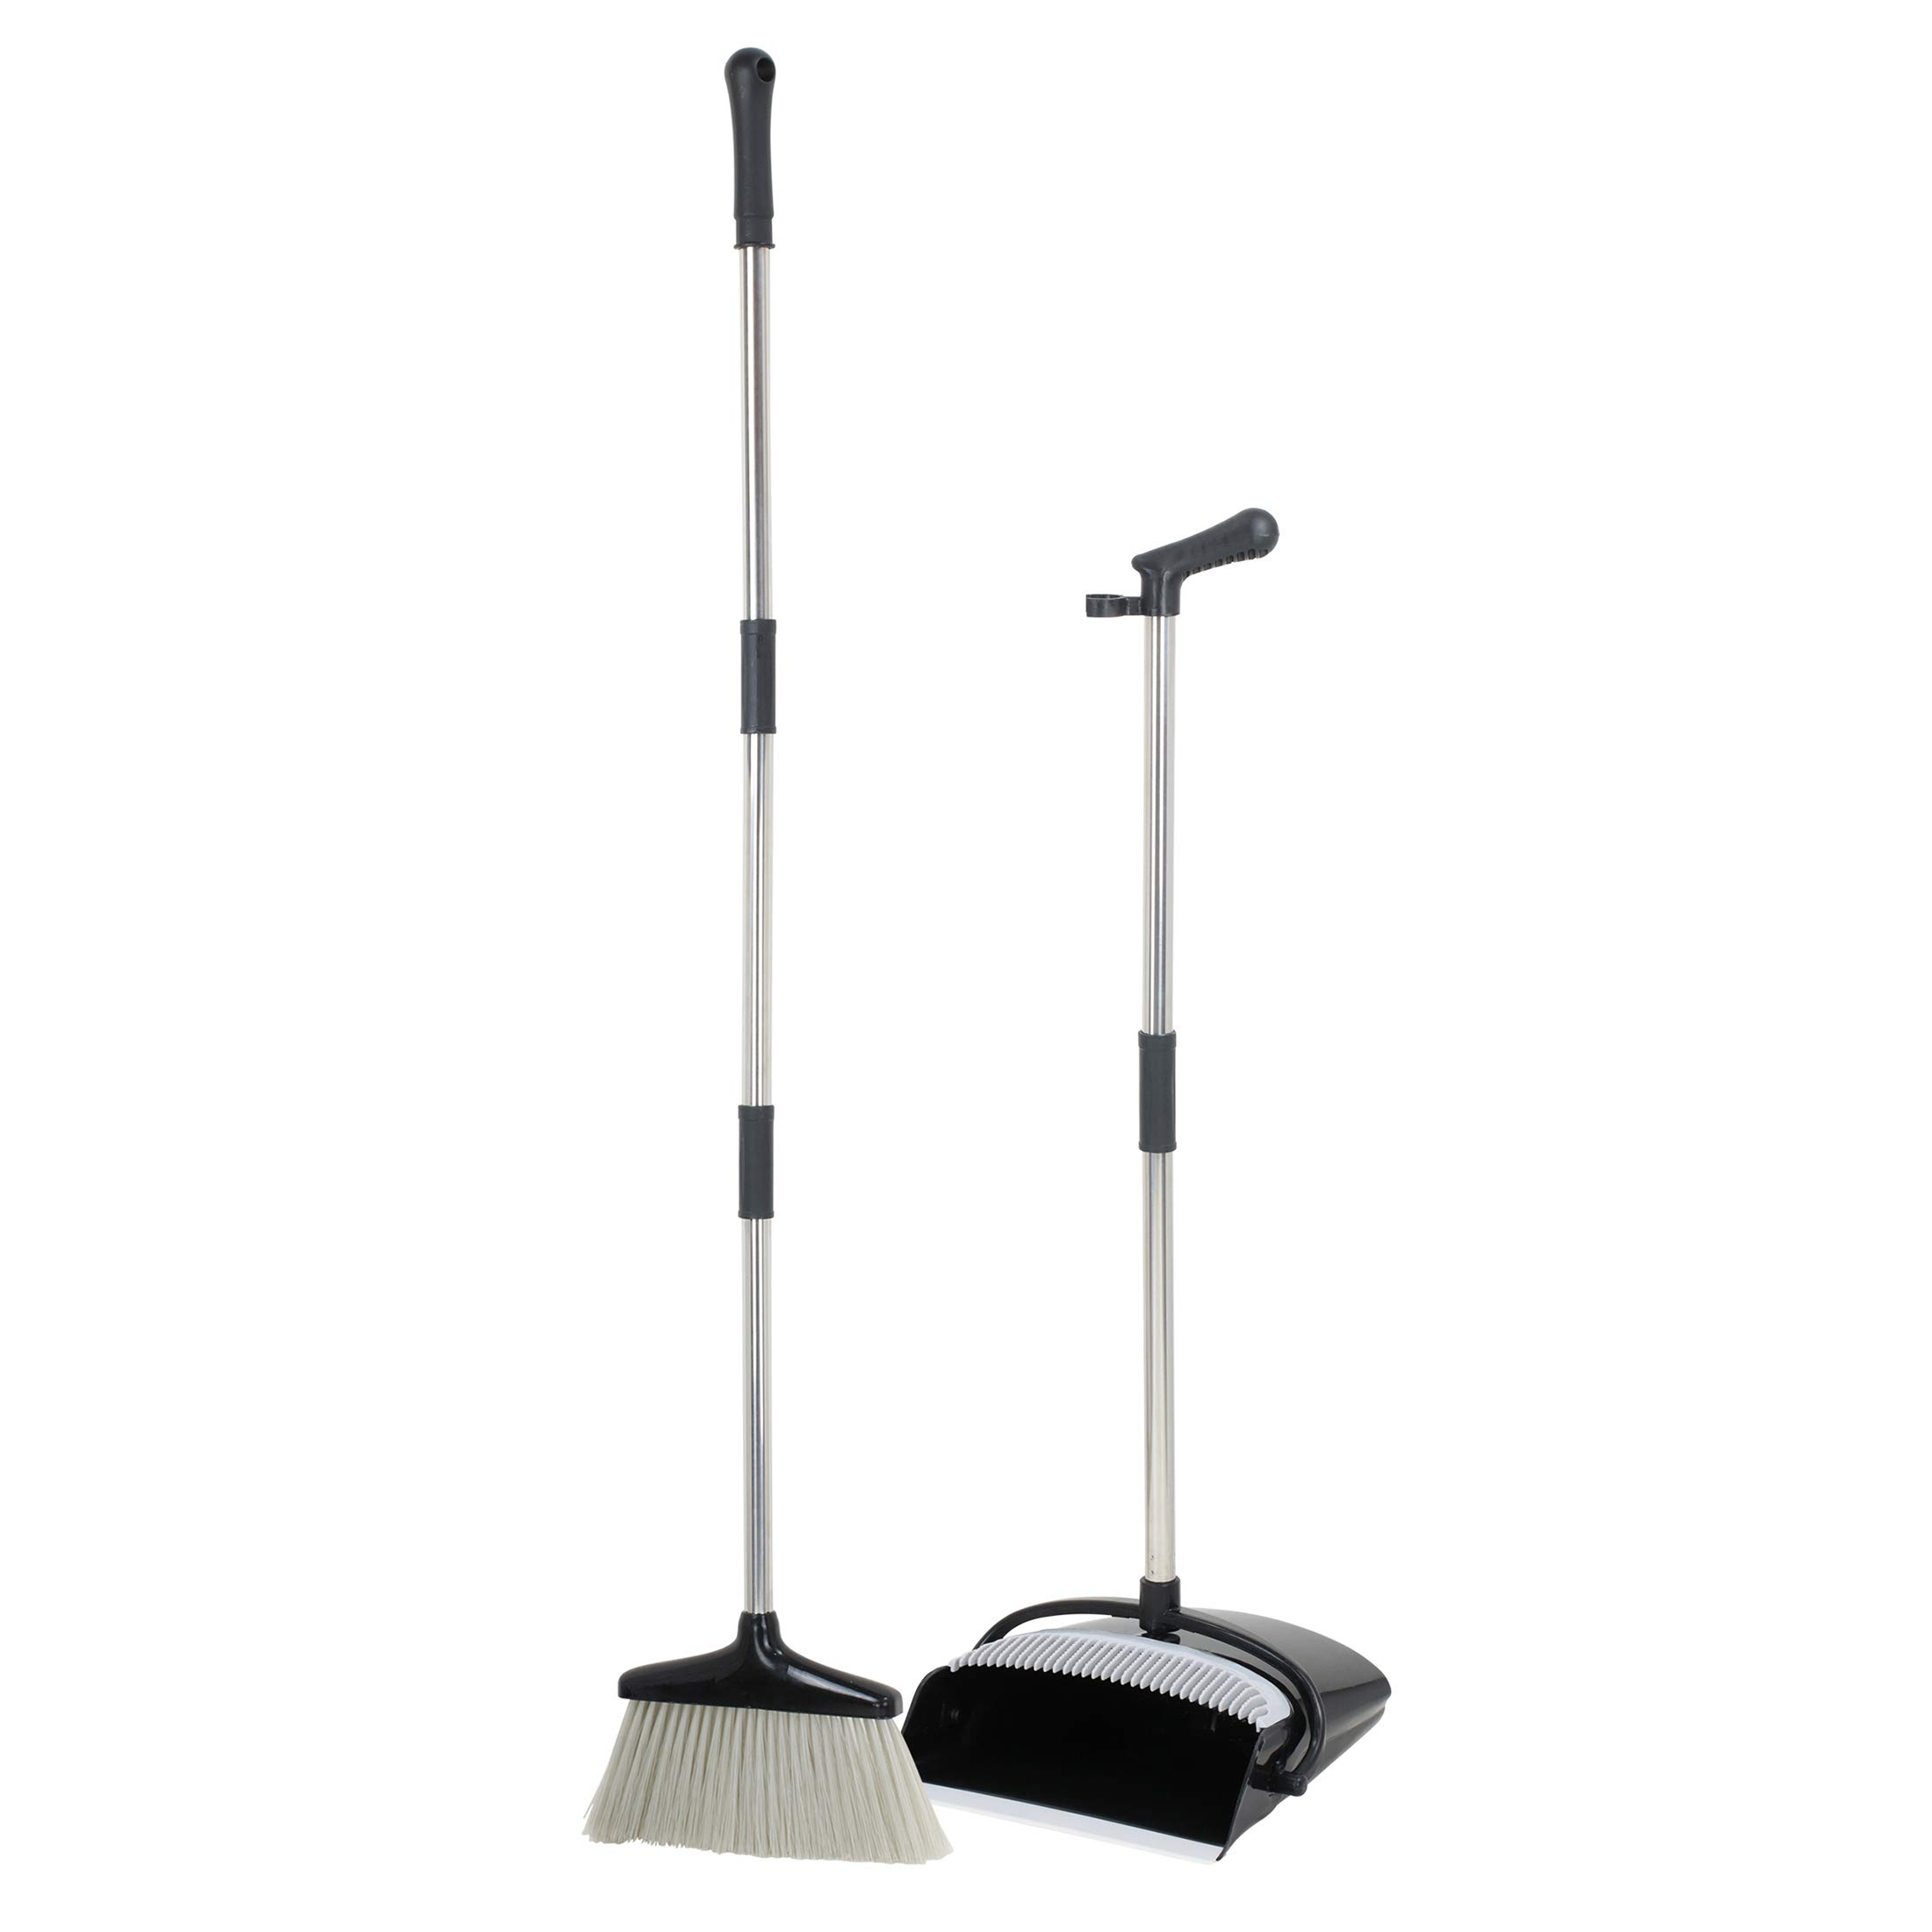 Broom and Dustpan Set Long Handle Dust Pan Stands Upright for Home Kitchen Office